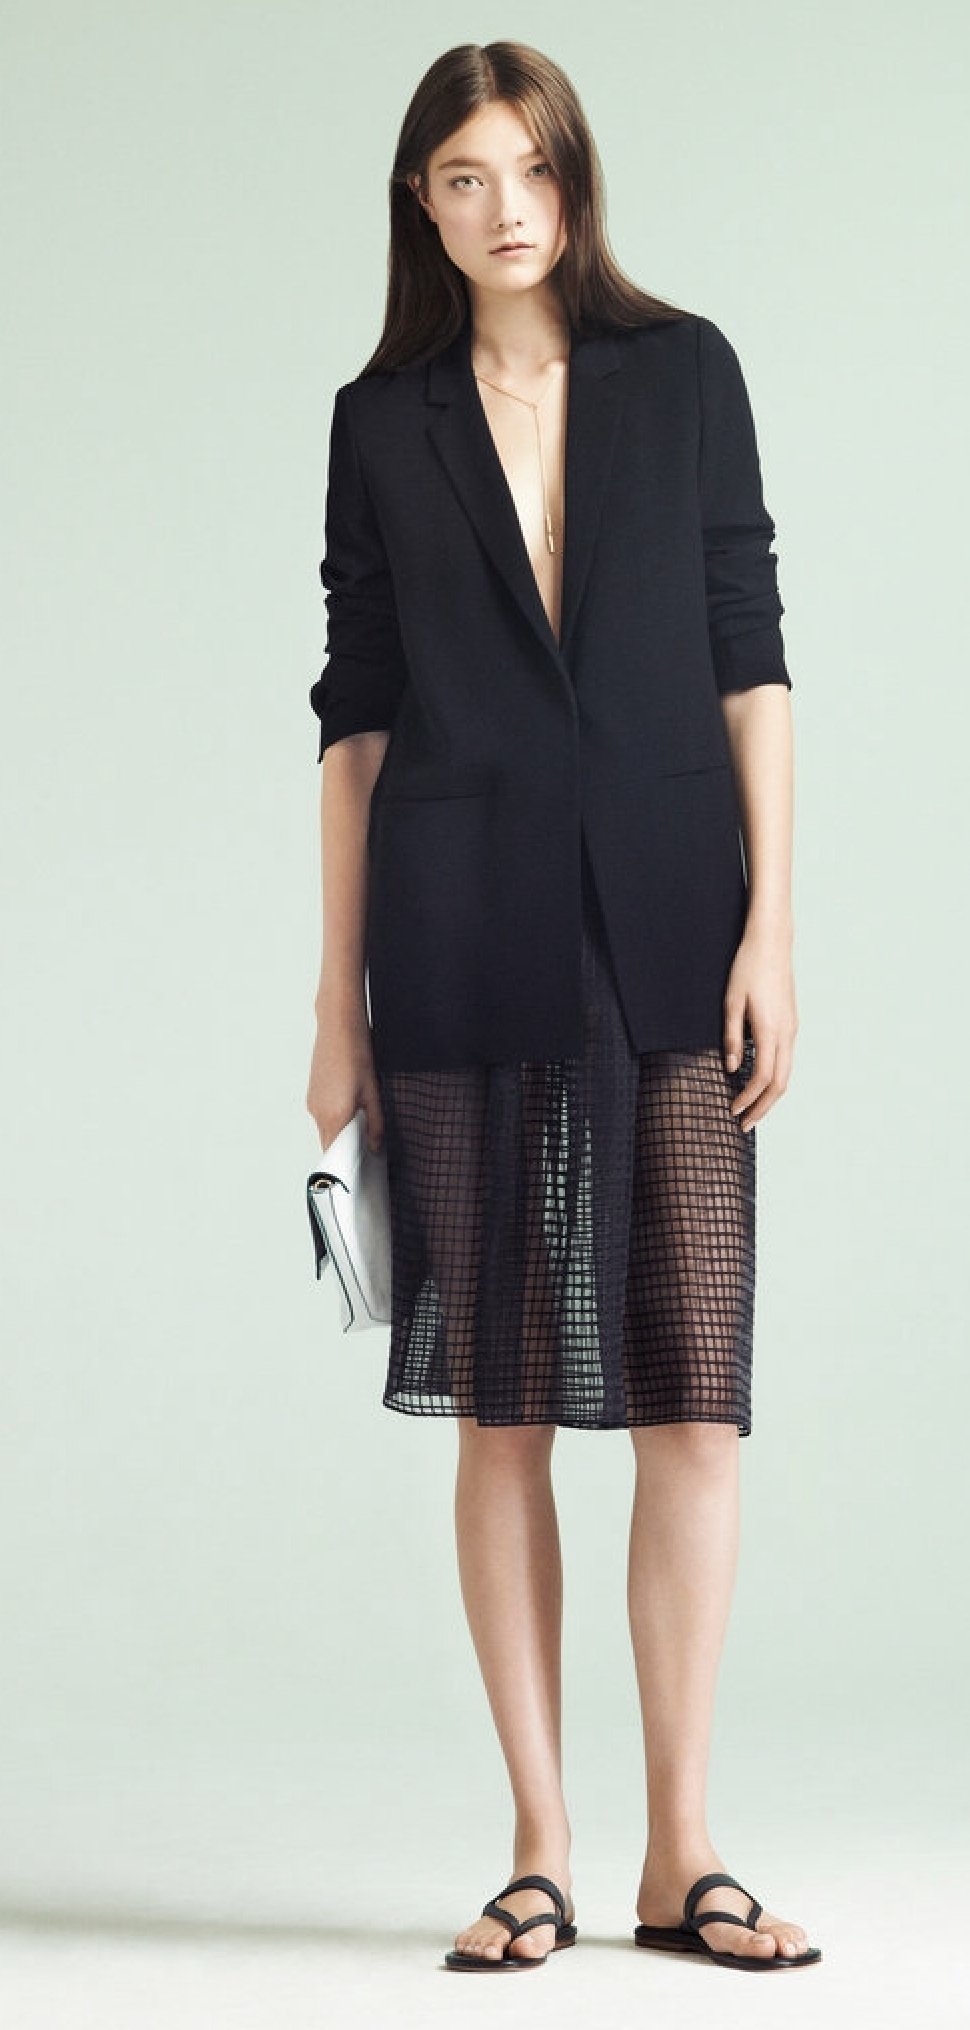 Elizabeth and James pairs a perforated mesh skirt with an oversized jacket.